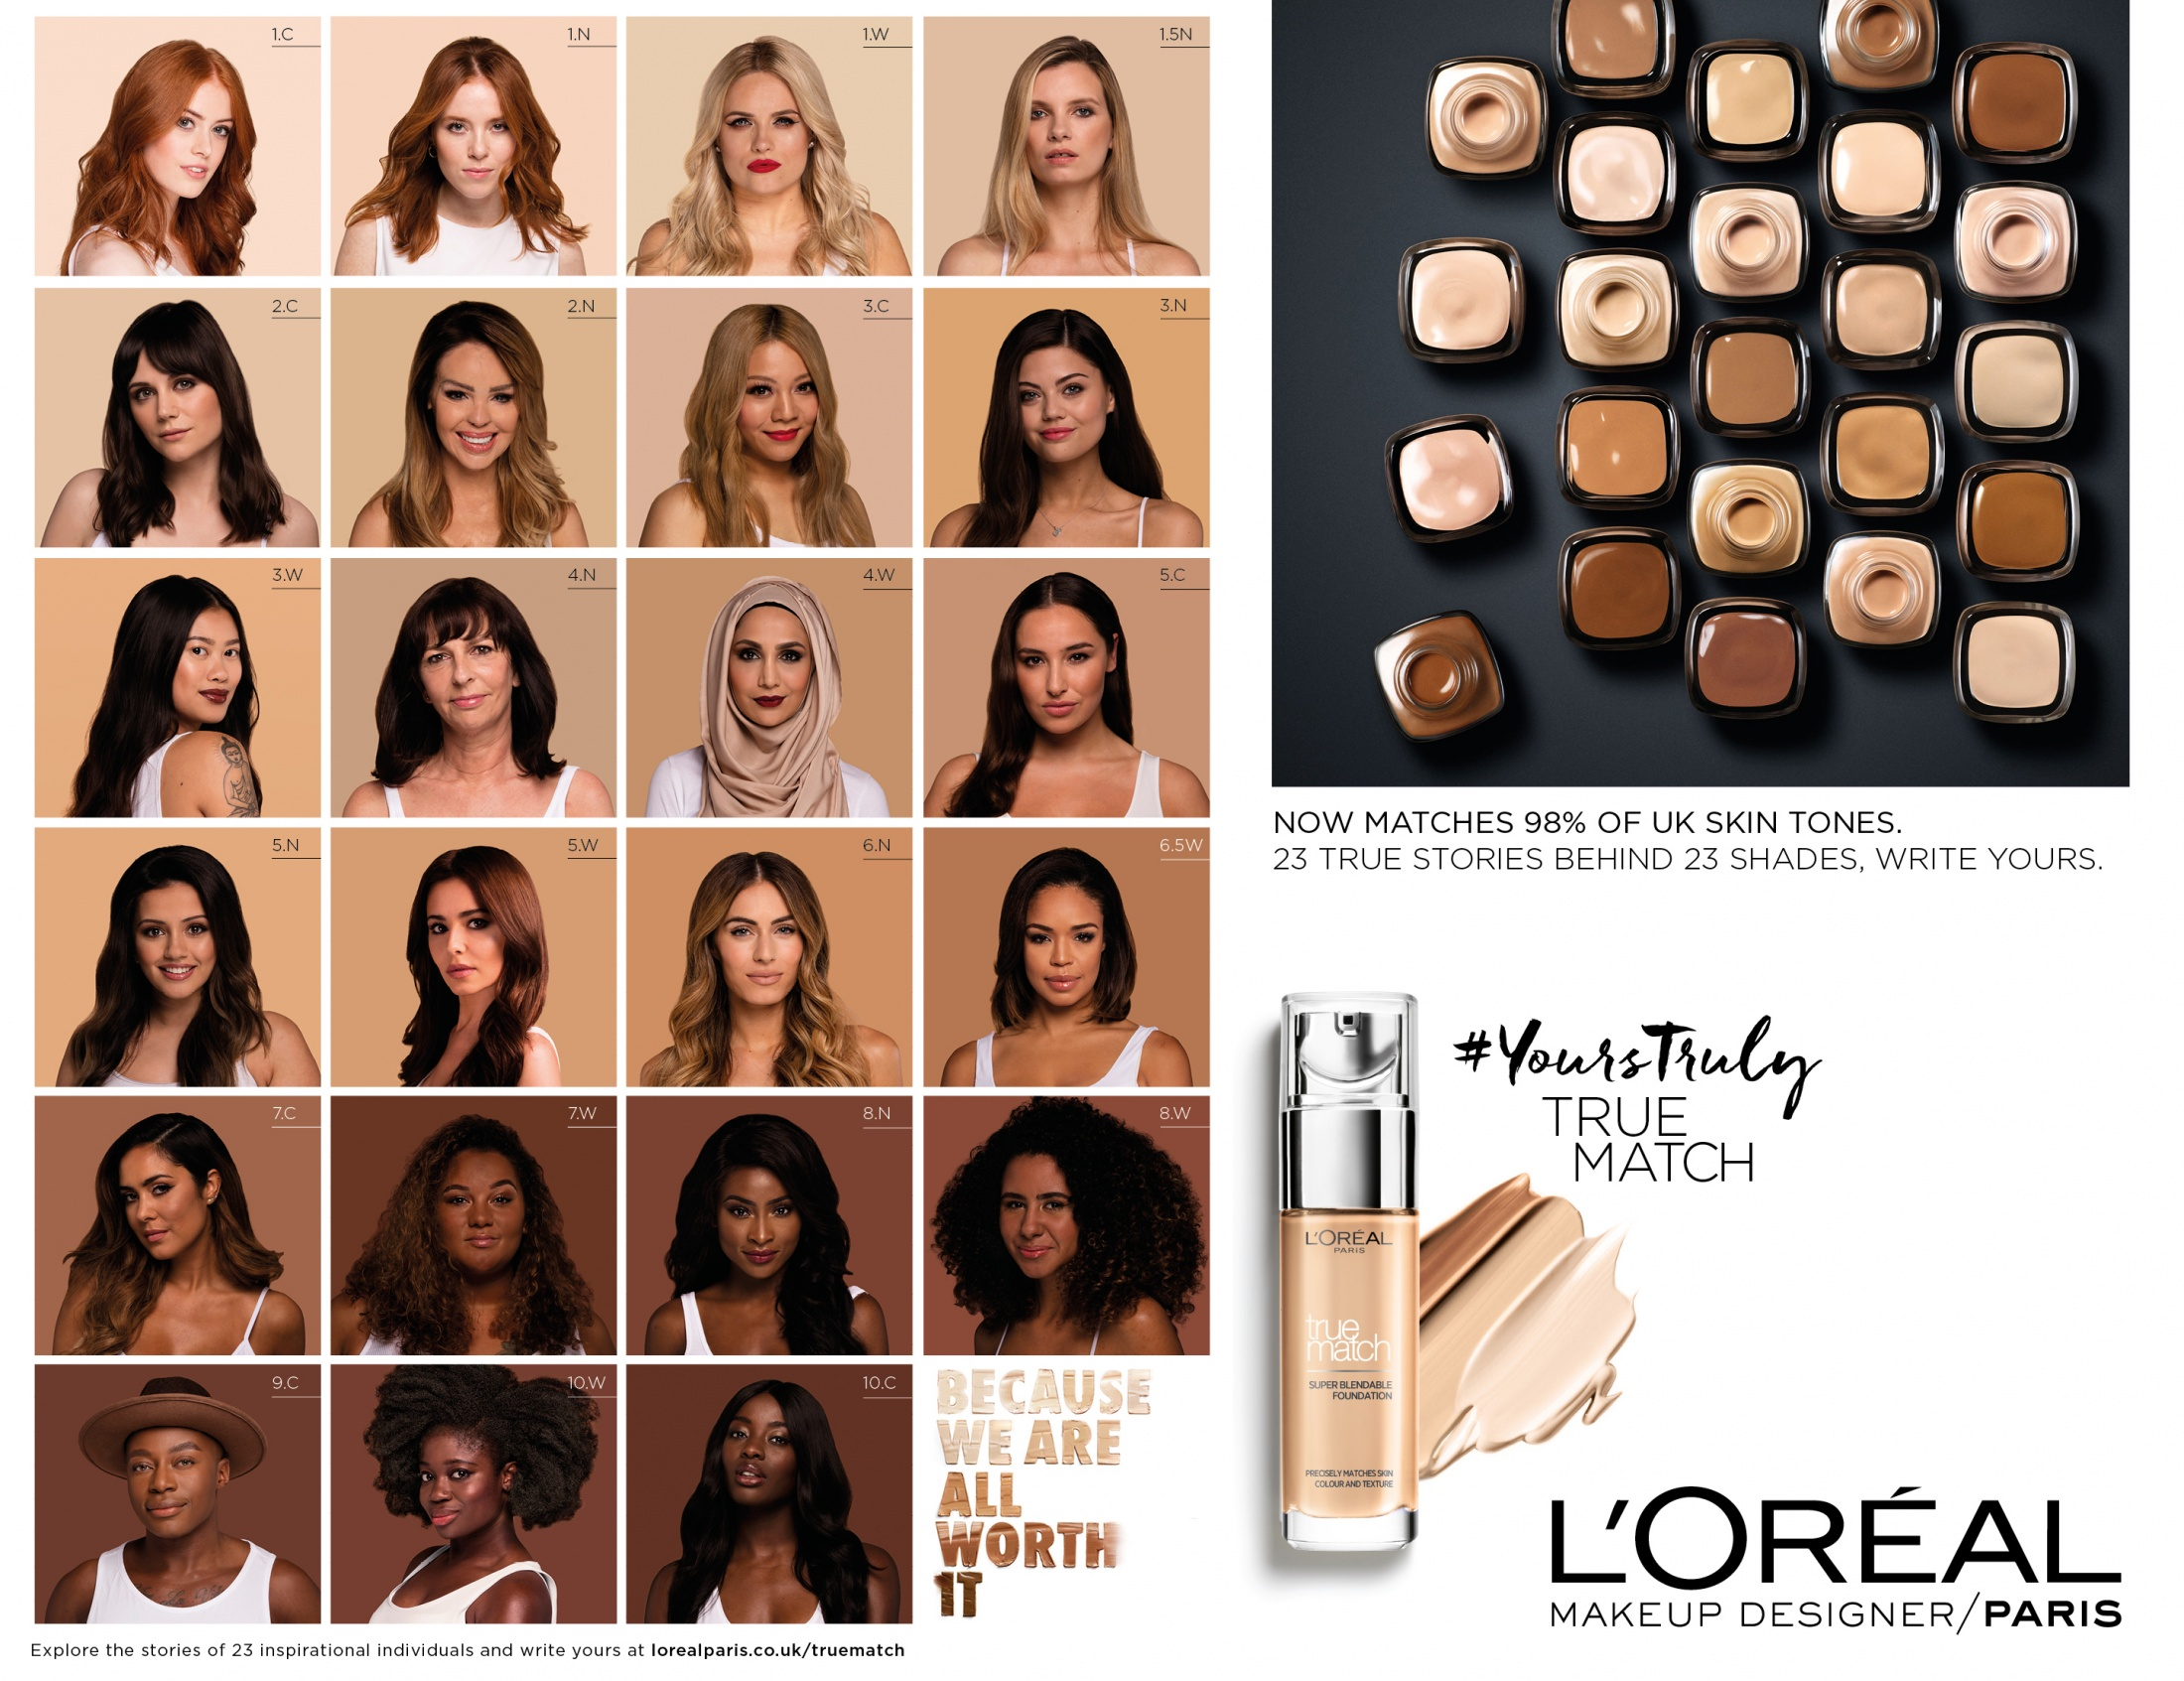 Thumbnail for True Match: 23 shades, 23 stories